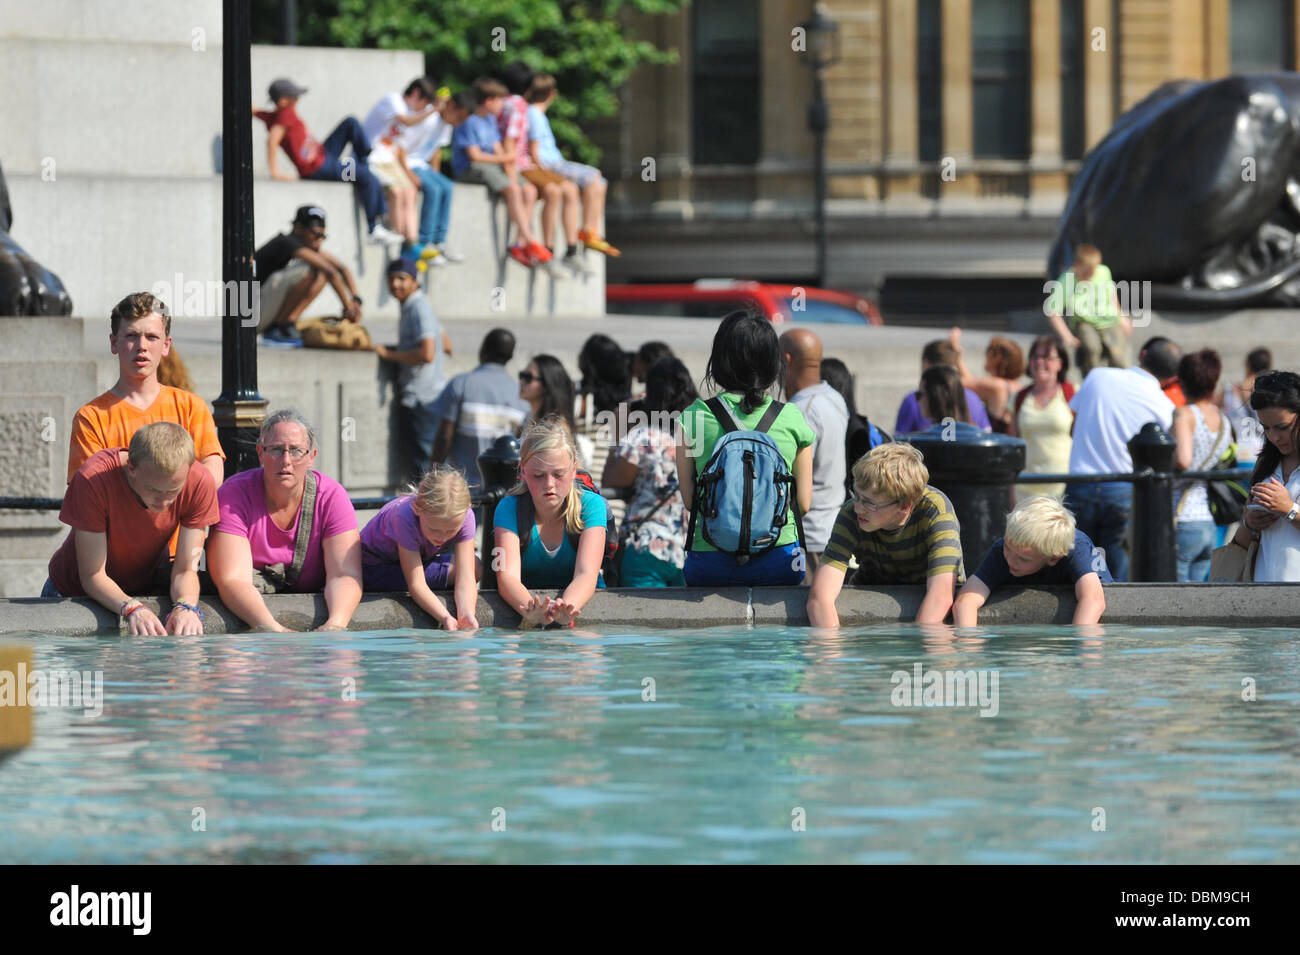 Trafalgar Square, London, UK. 1st August 2013. Children cool their hands in the fountains of Trafalgar Square in - Stock Image